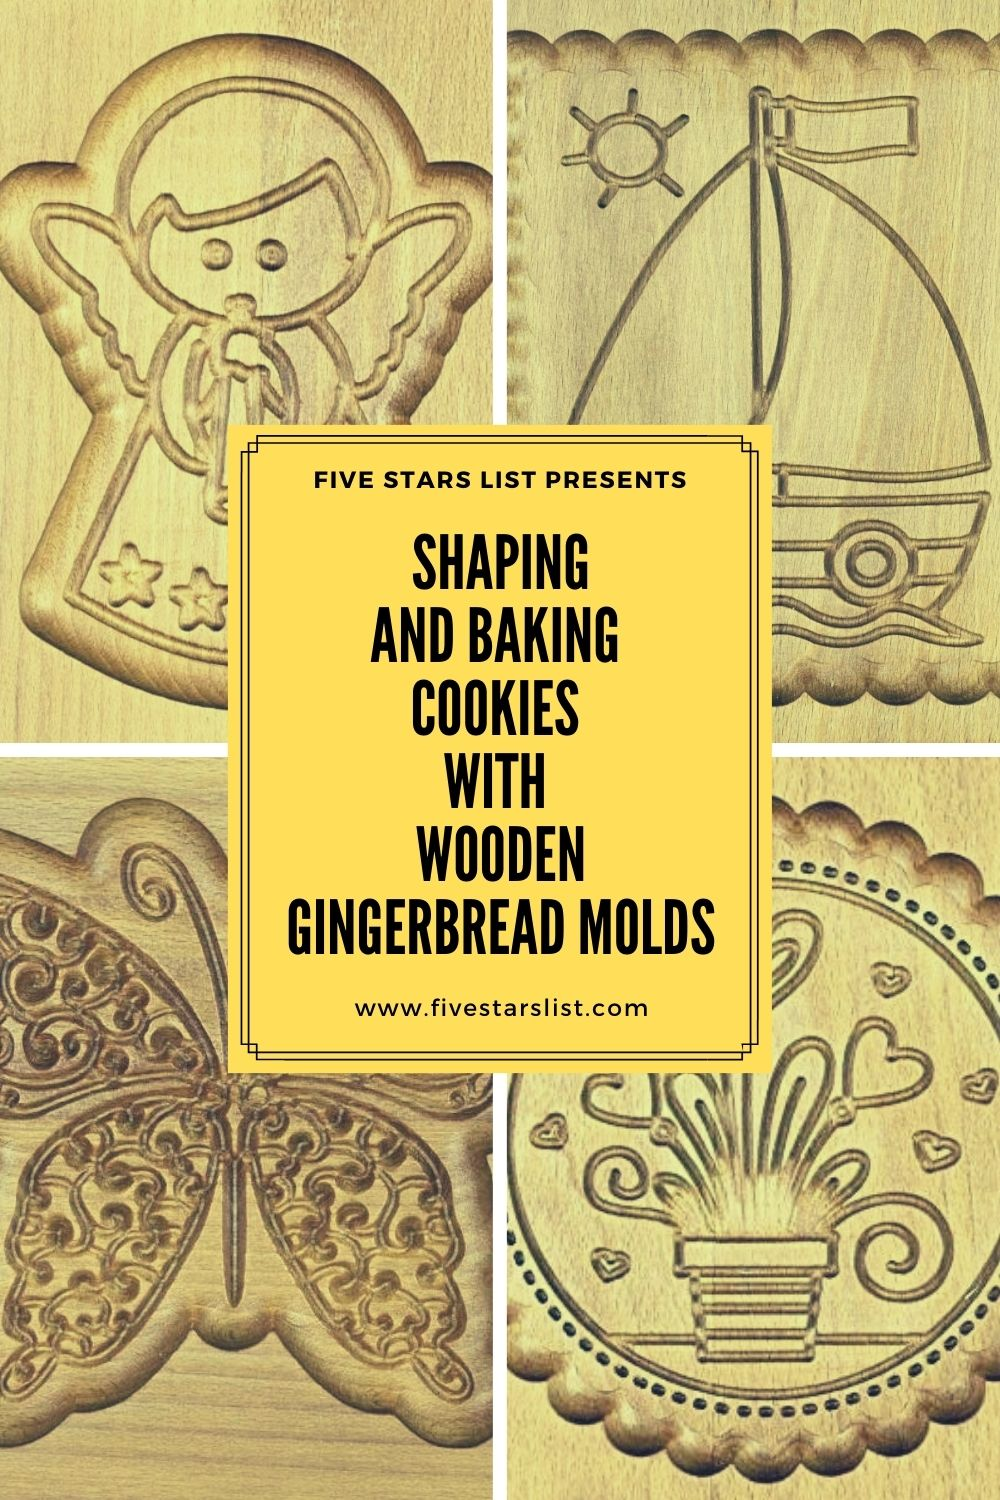 Shaping and Baking Cookies with Wooden Gingerbread Molds